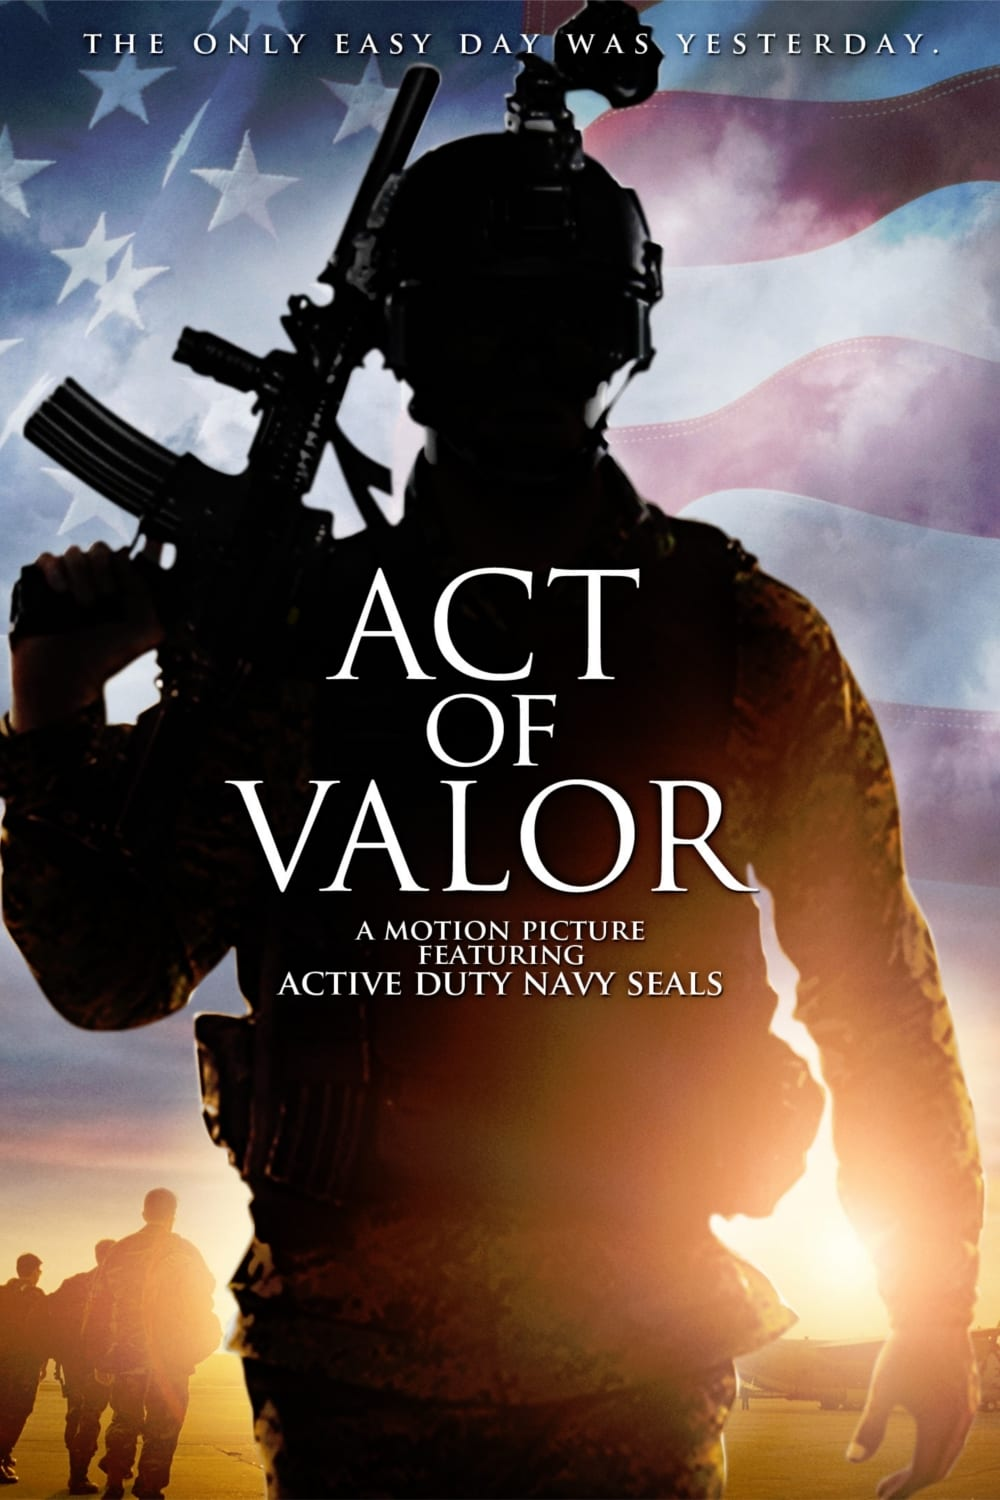 act of valor movie download 480p, act of valor movie download 720p, act of valor movie download 300mb, act of valor movie download free